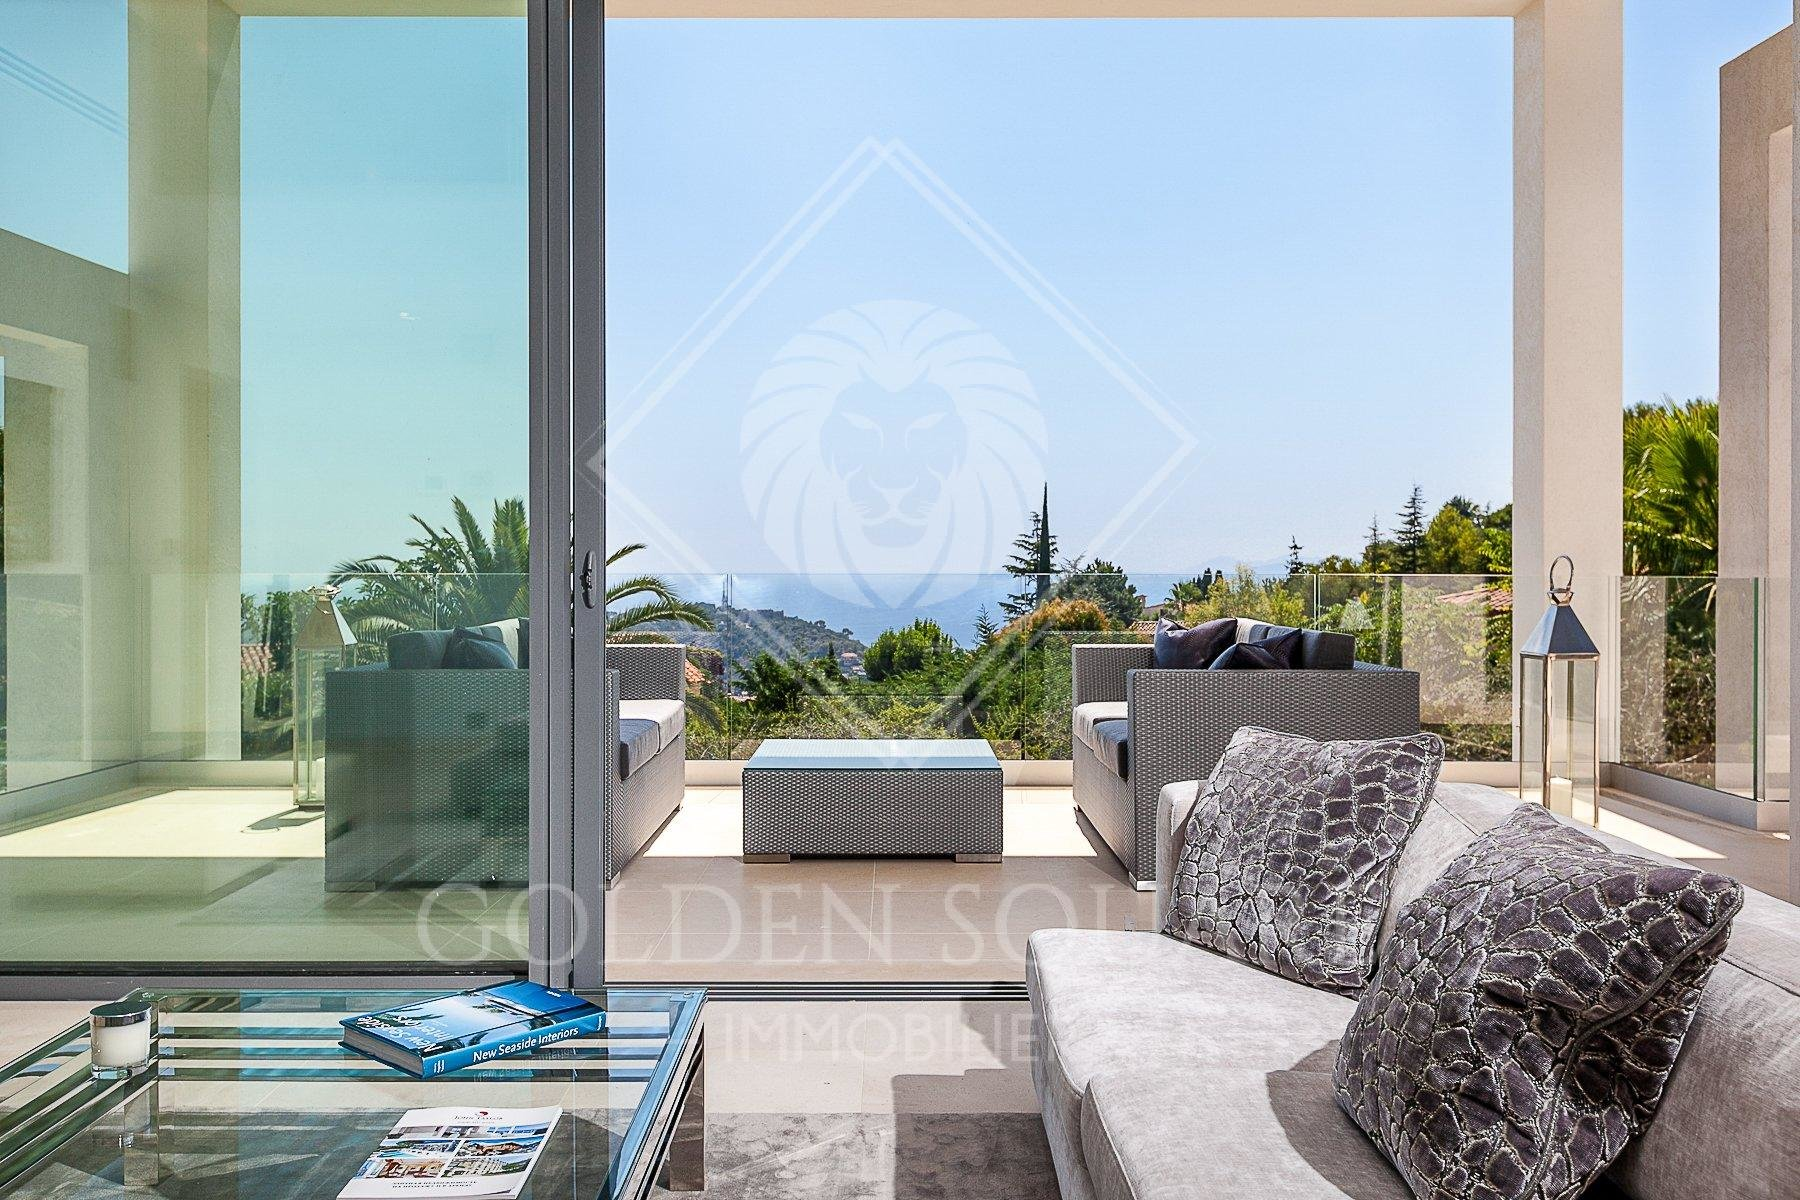 LE CASTELLET - 6 BEDROOM - MAGNIFICENT CONTEMPORARY VILLA